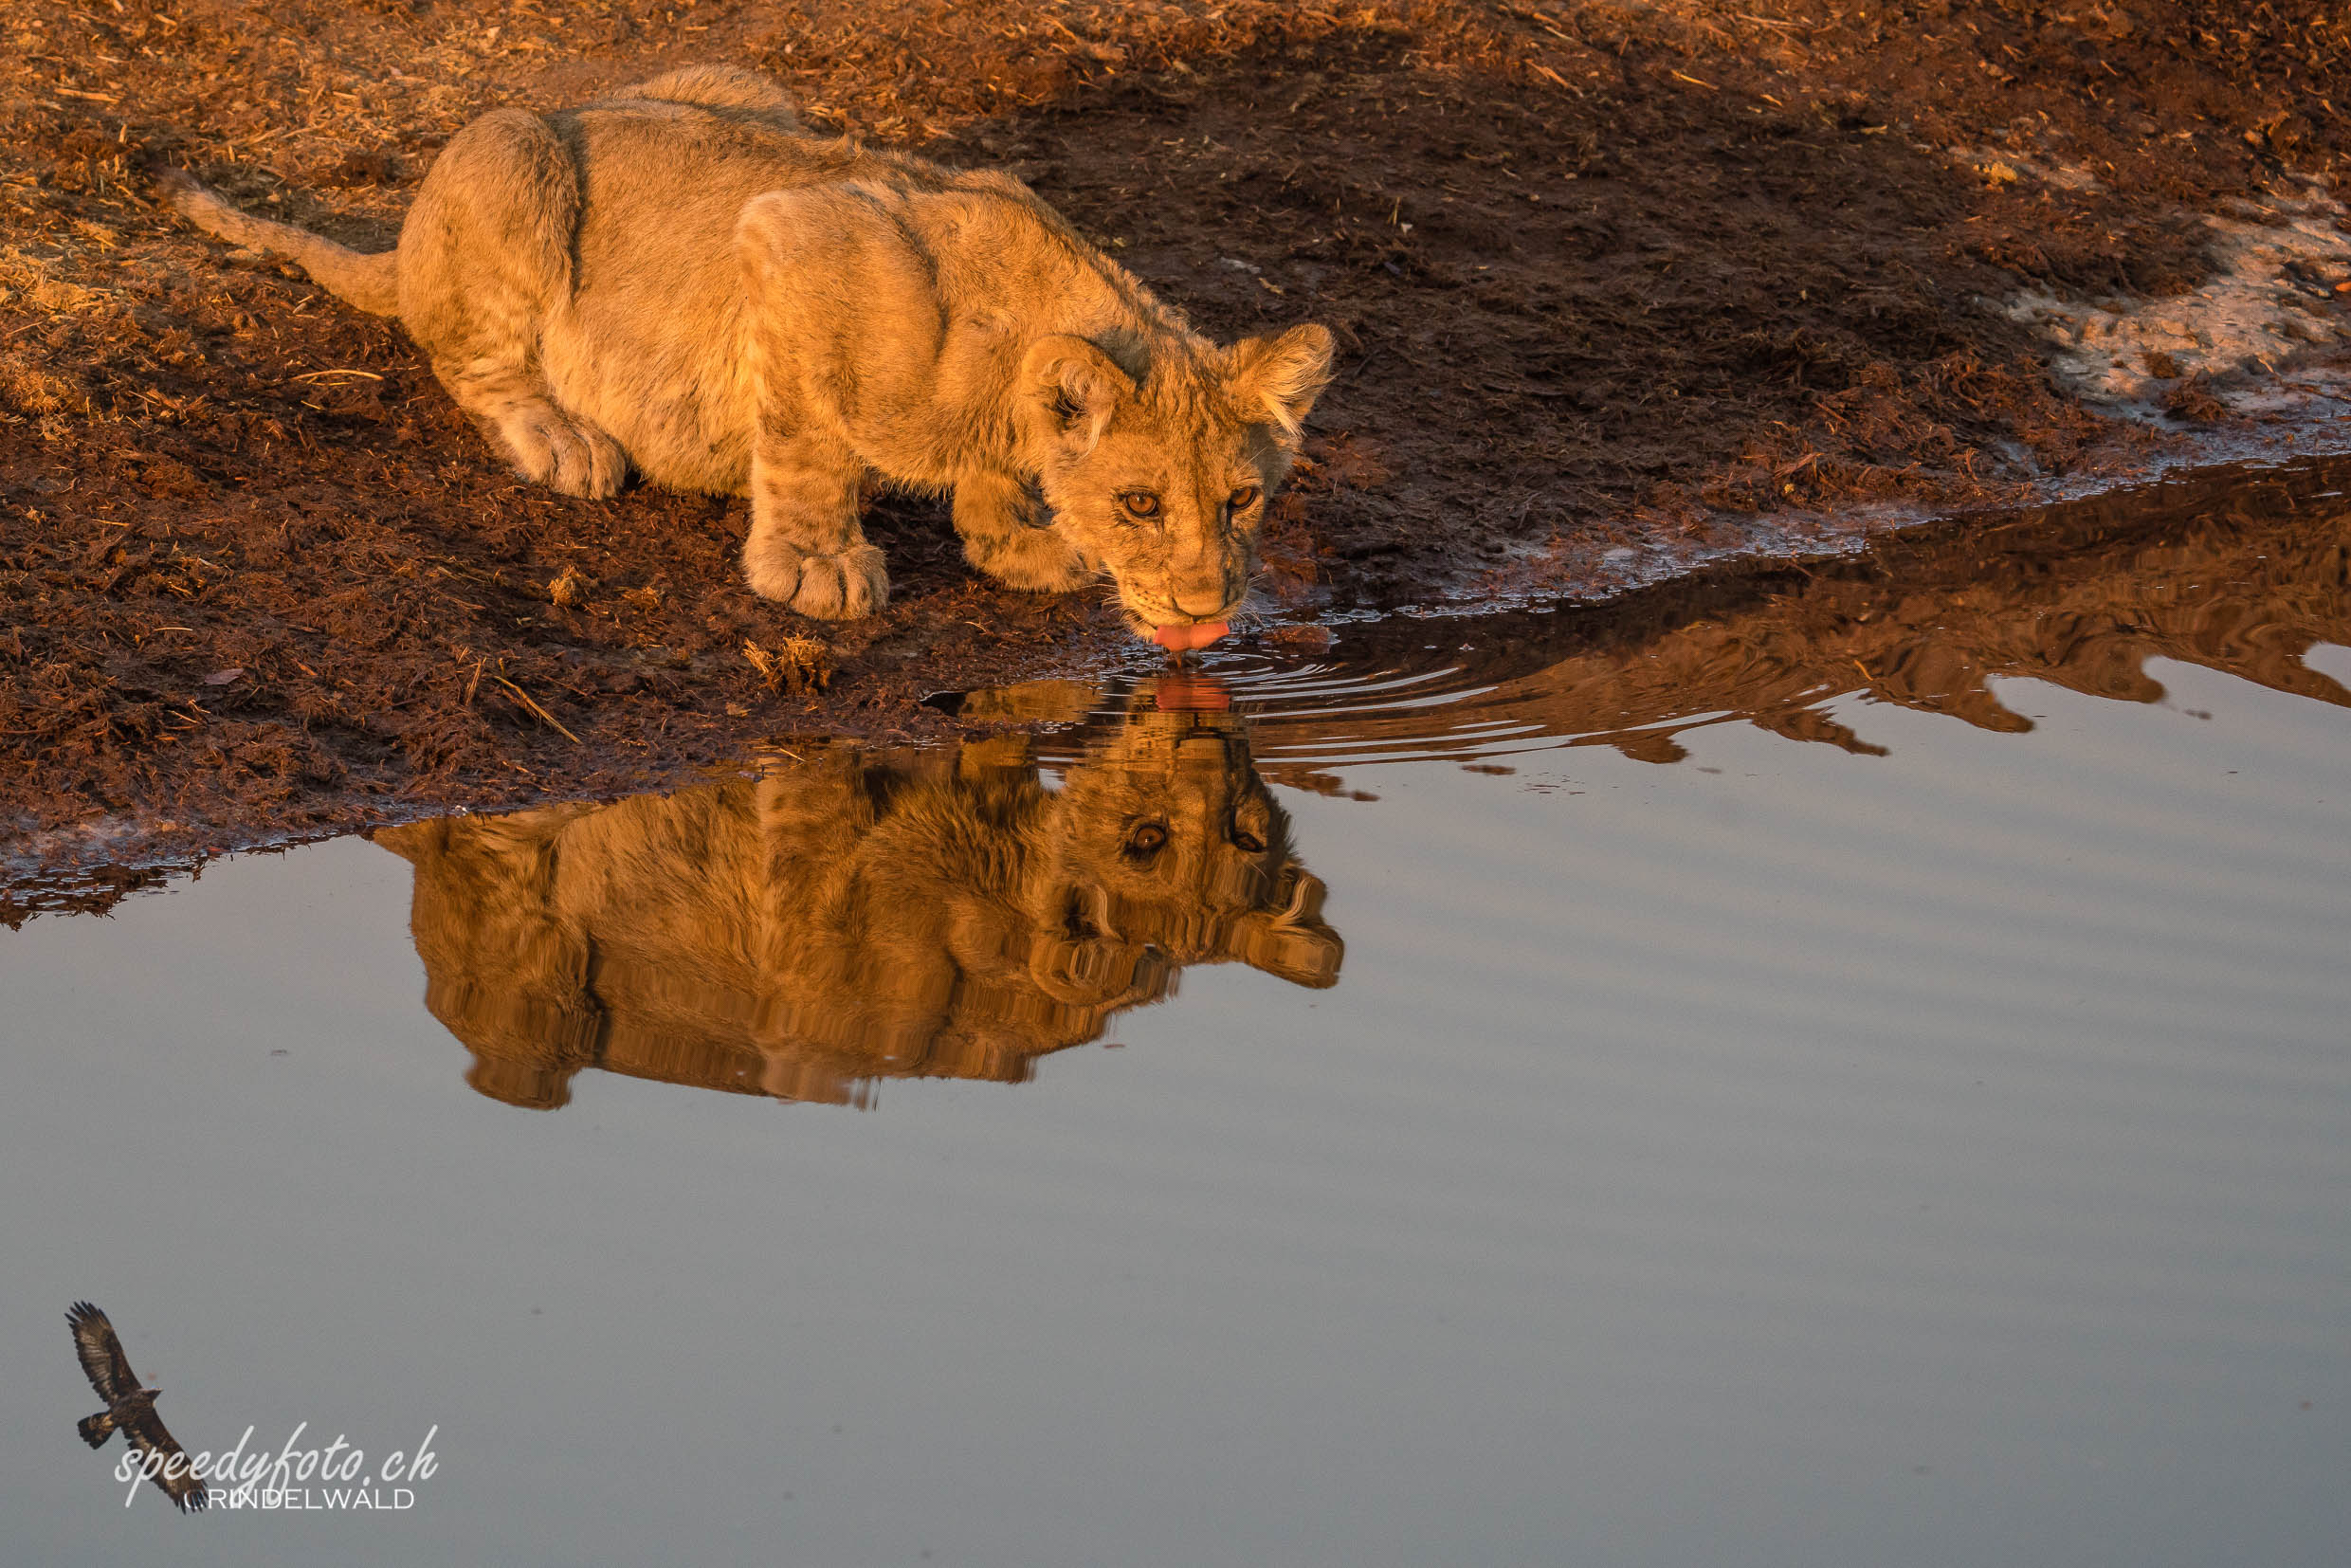 The cub in the mirror